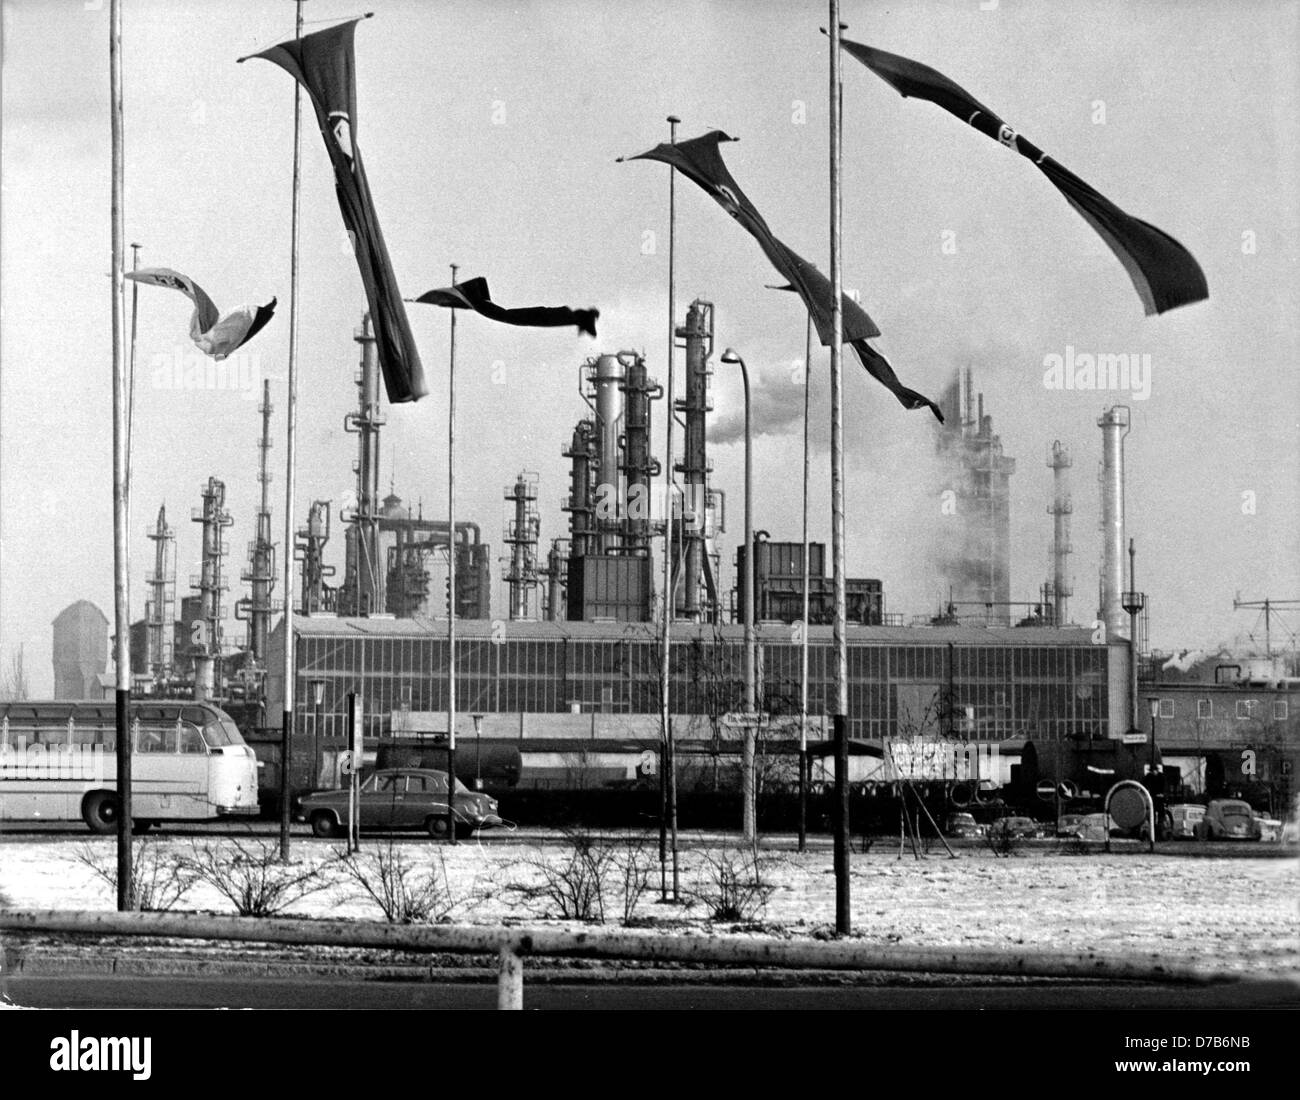 View of a part of the Farbwerke Hoechst on the 10th of January in 1963 on the occasion of the 100th jubilee of the company. Stock Photo